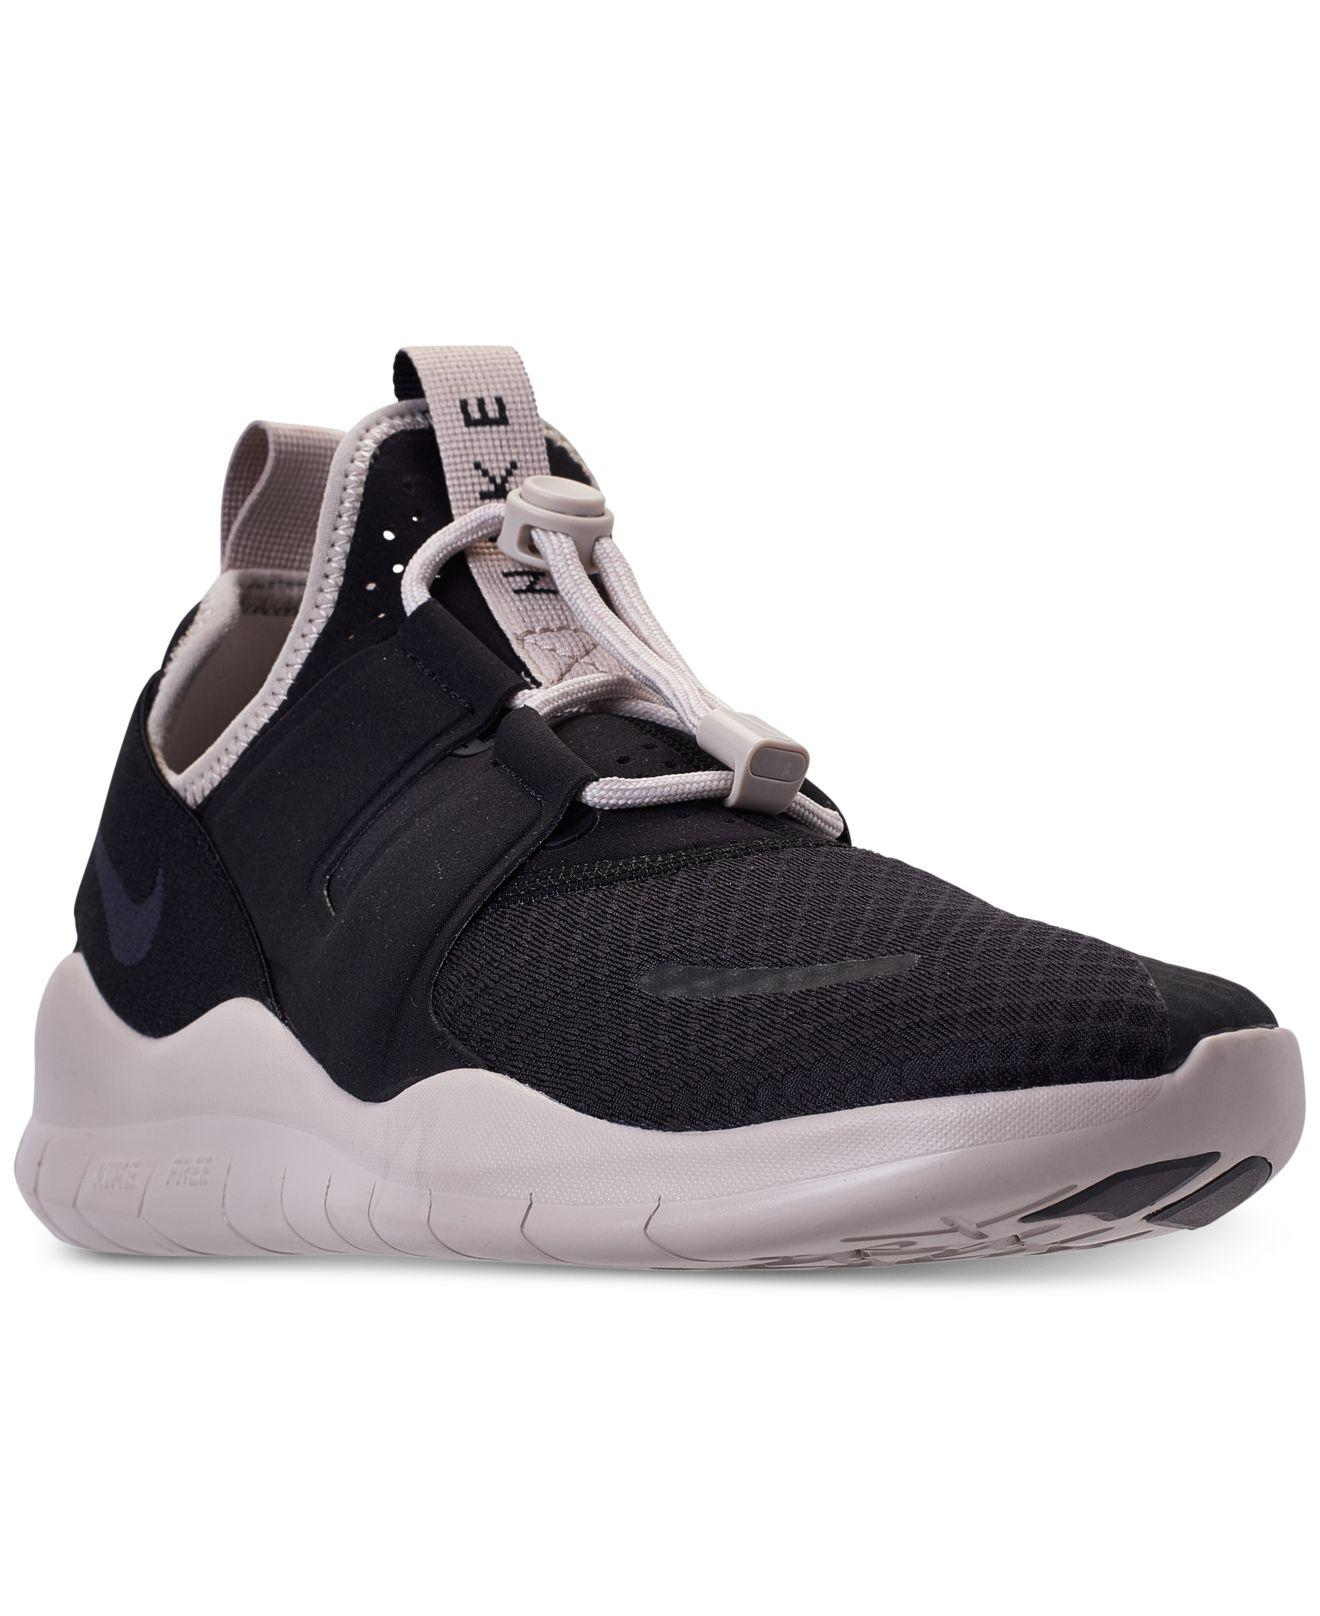 9b36b48d5d3 Lyst - Nike Free Rn Commuter 2018 Running Sneakers From Finish Line ...